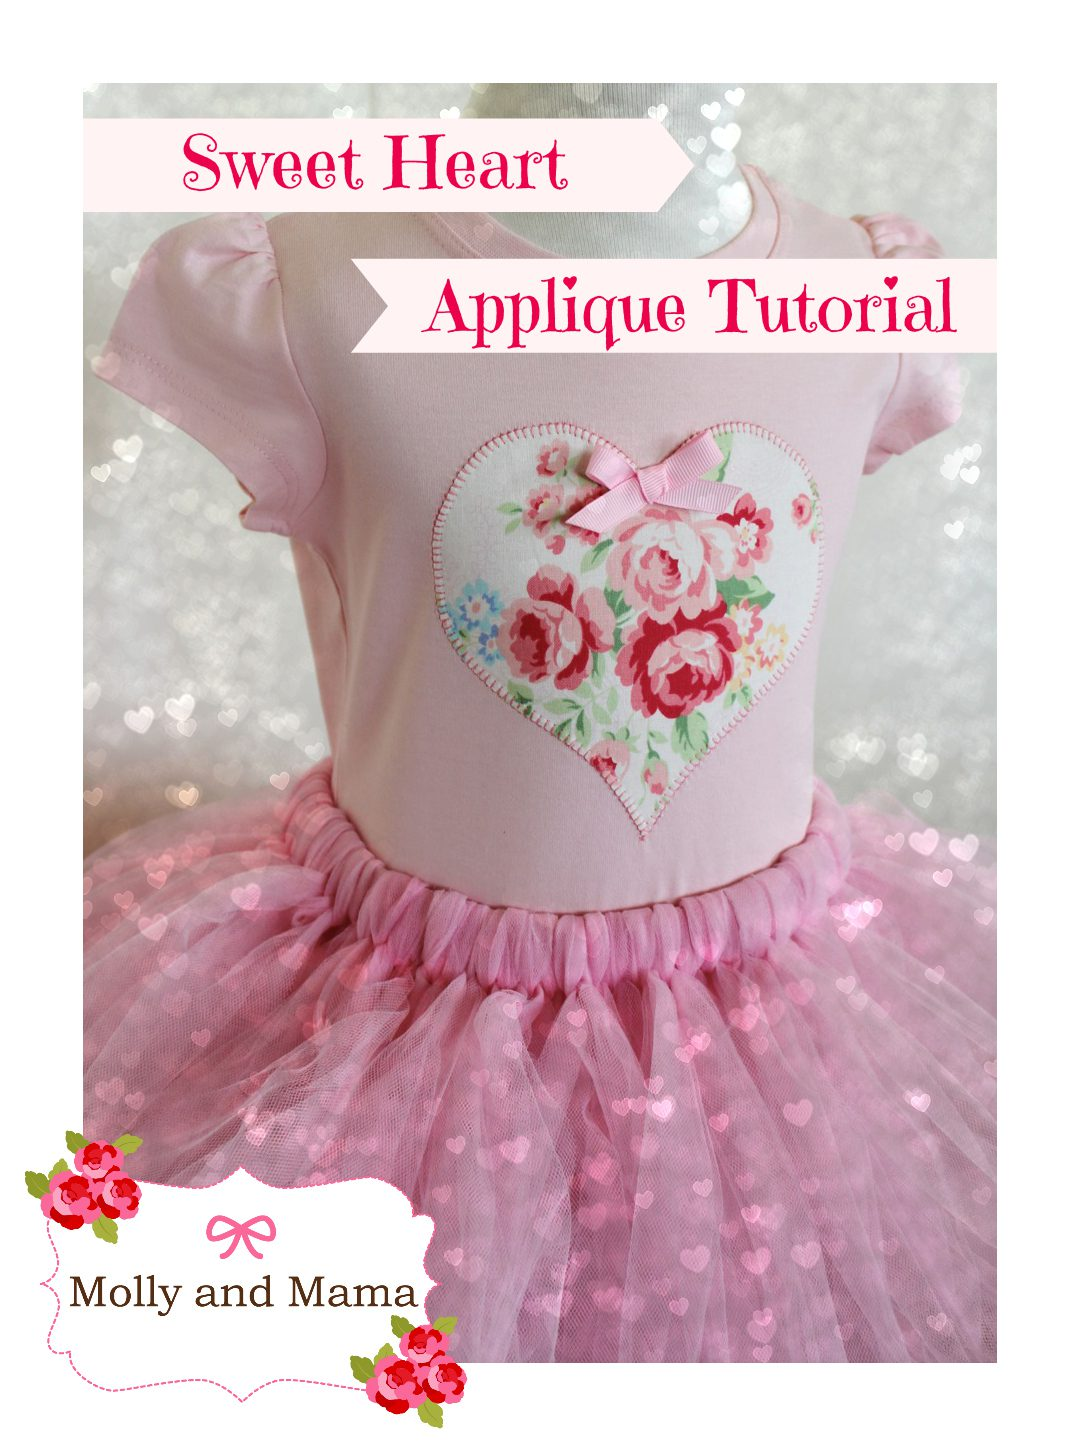 Sweet Heart Applique Tutorial by Molly and Mama